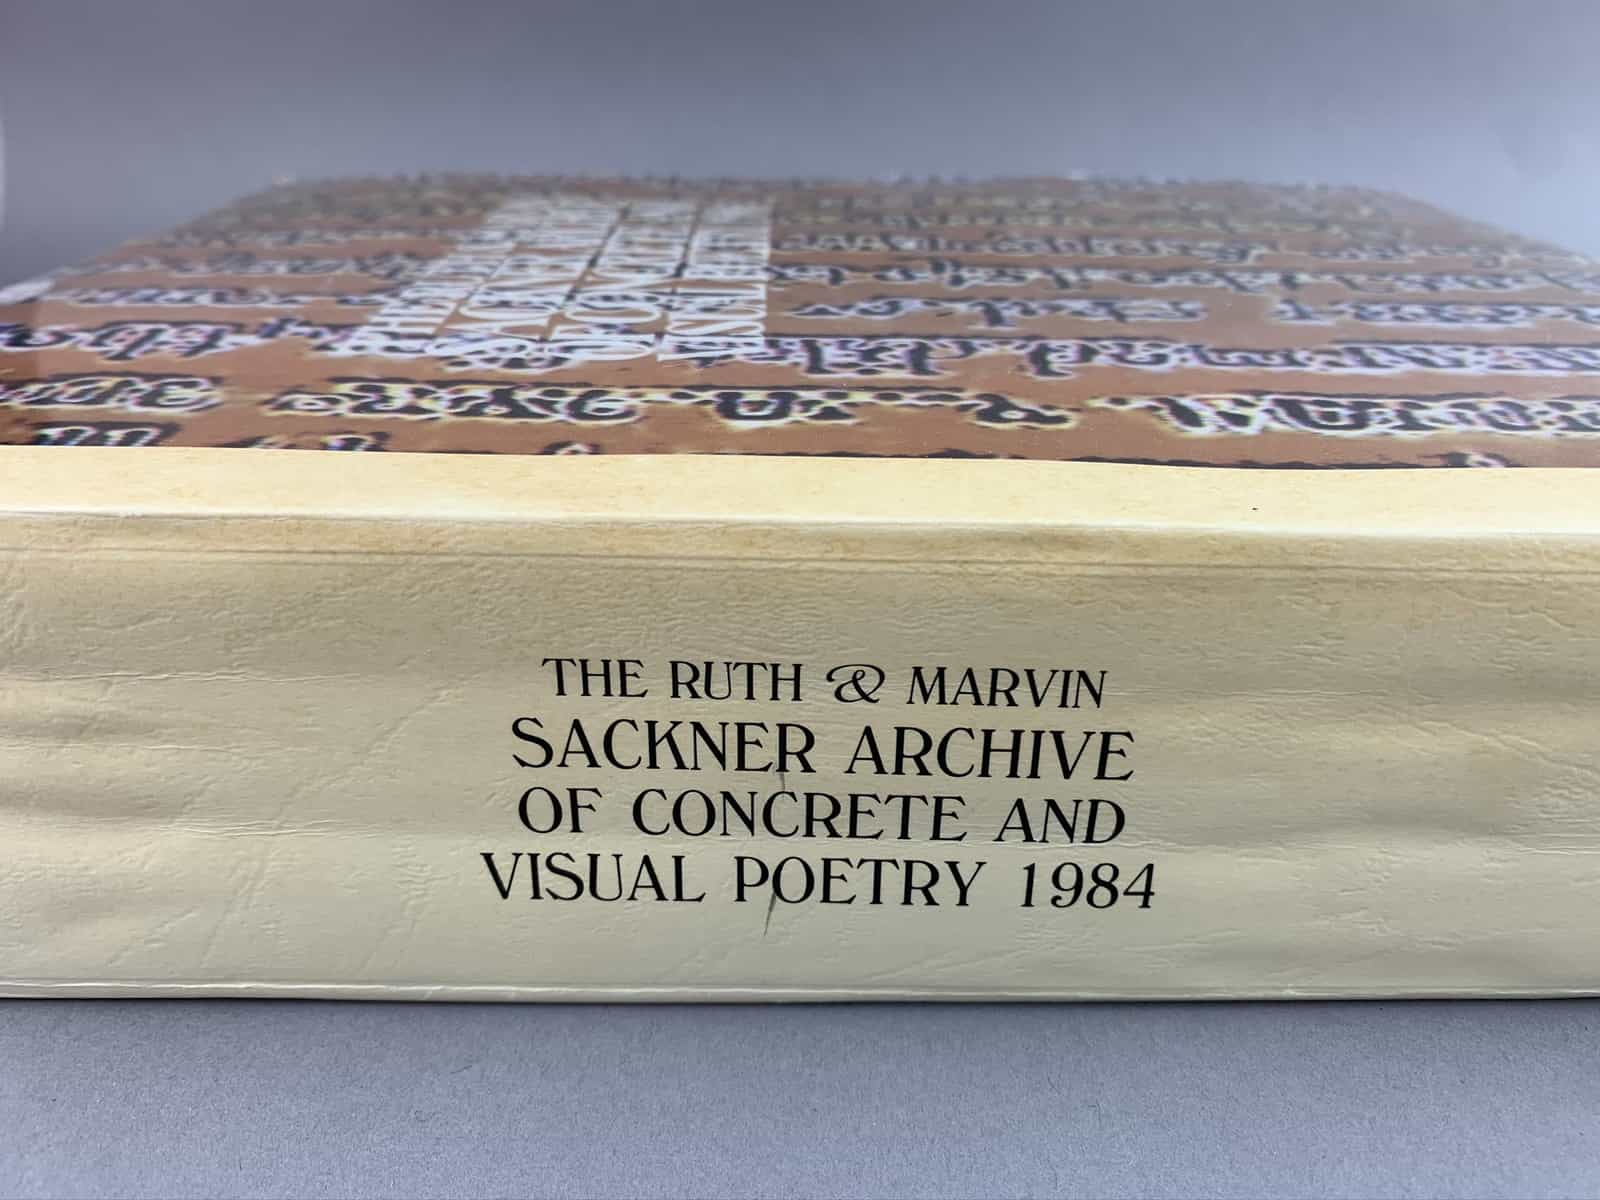 This page includes three images. One is the catalog cover, which is orange with black and white vertical text as design. The catalog title is prominent. The second image is the catalog spine and features the title. The third image is the open catalog.